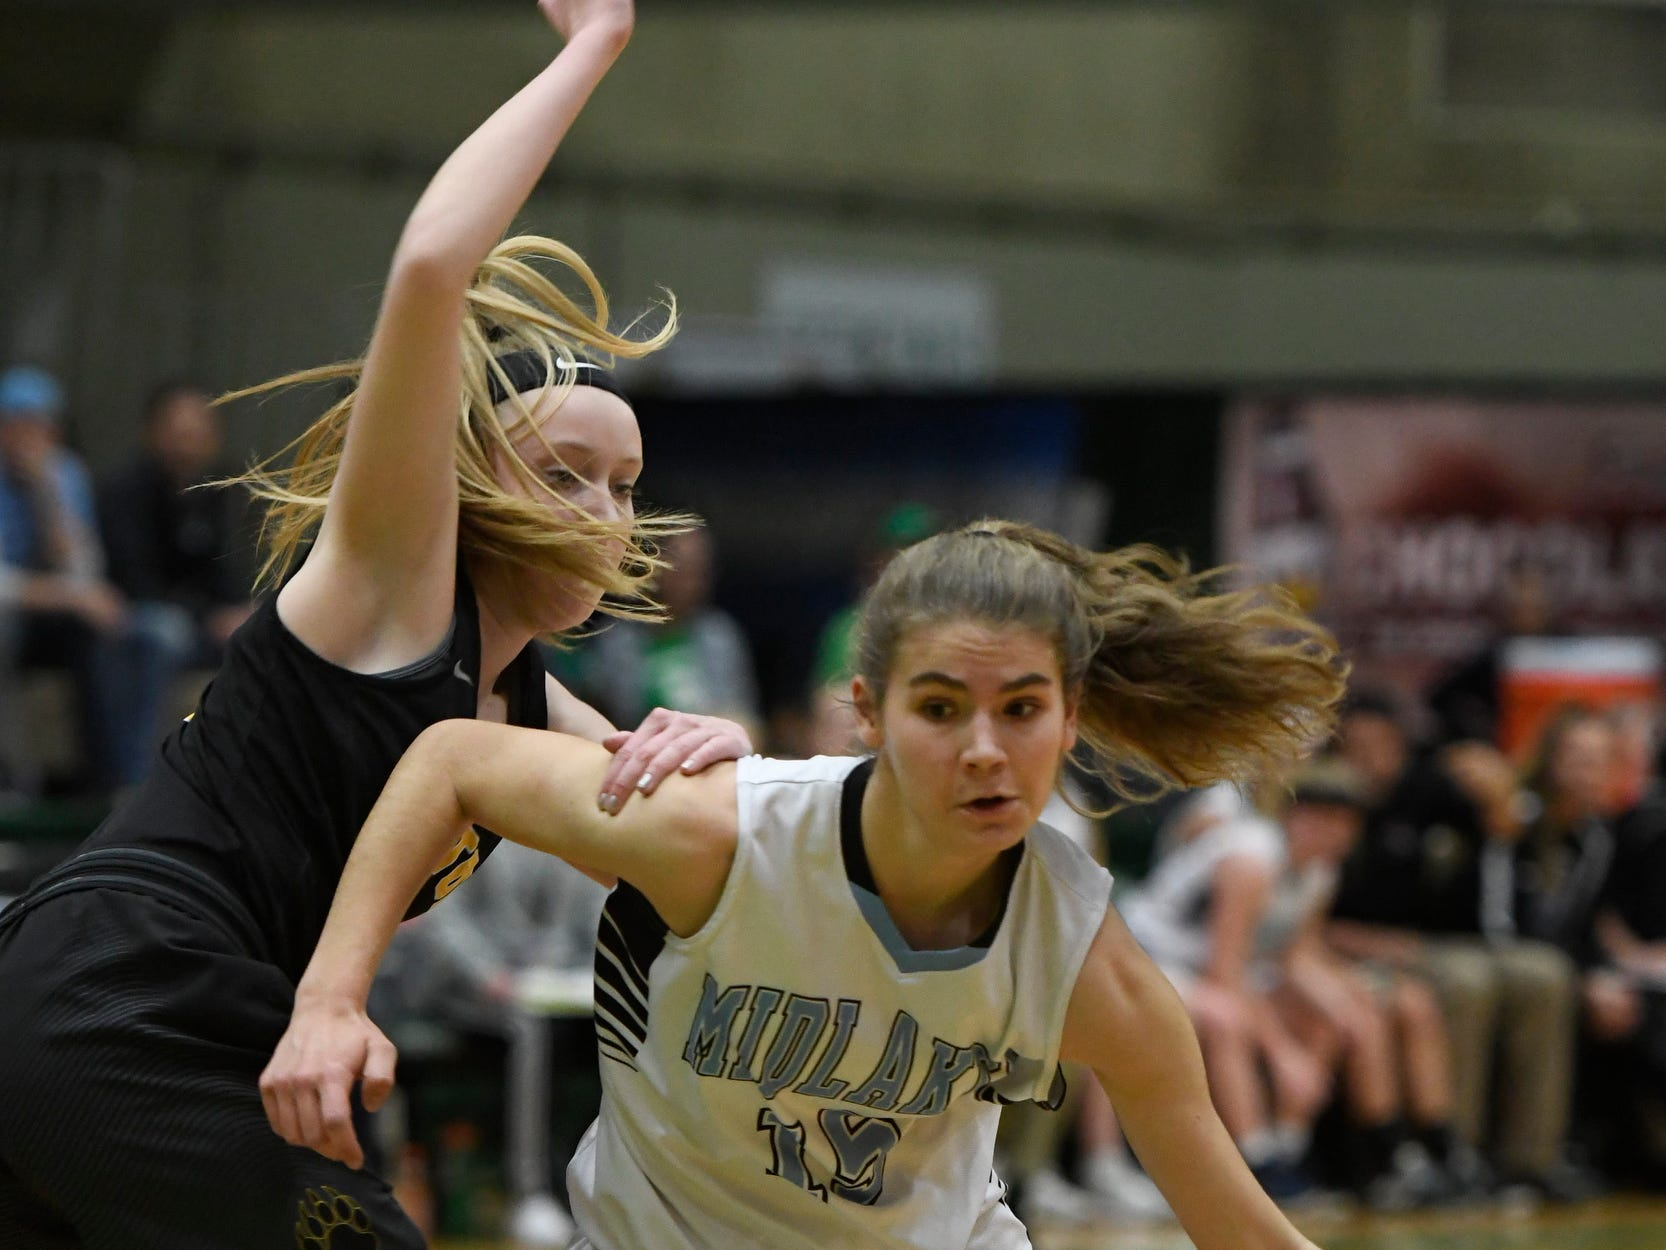 Midlakes's Cara Walker dribbles the ball past Canton's Sarah Sieminski during their Class B State Semifinal at Hudson Valley Community College in Troy, N.Y. on Friday, Mar. 15, 2019.